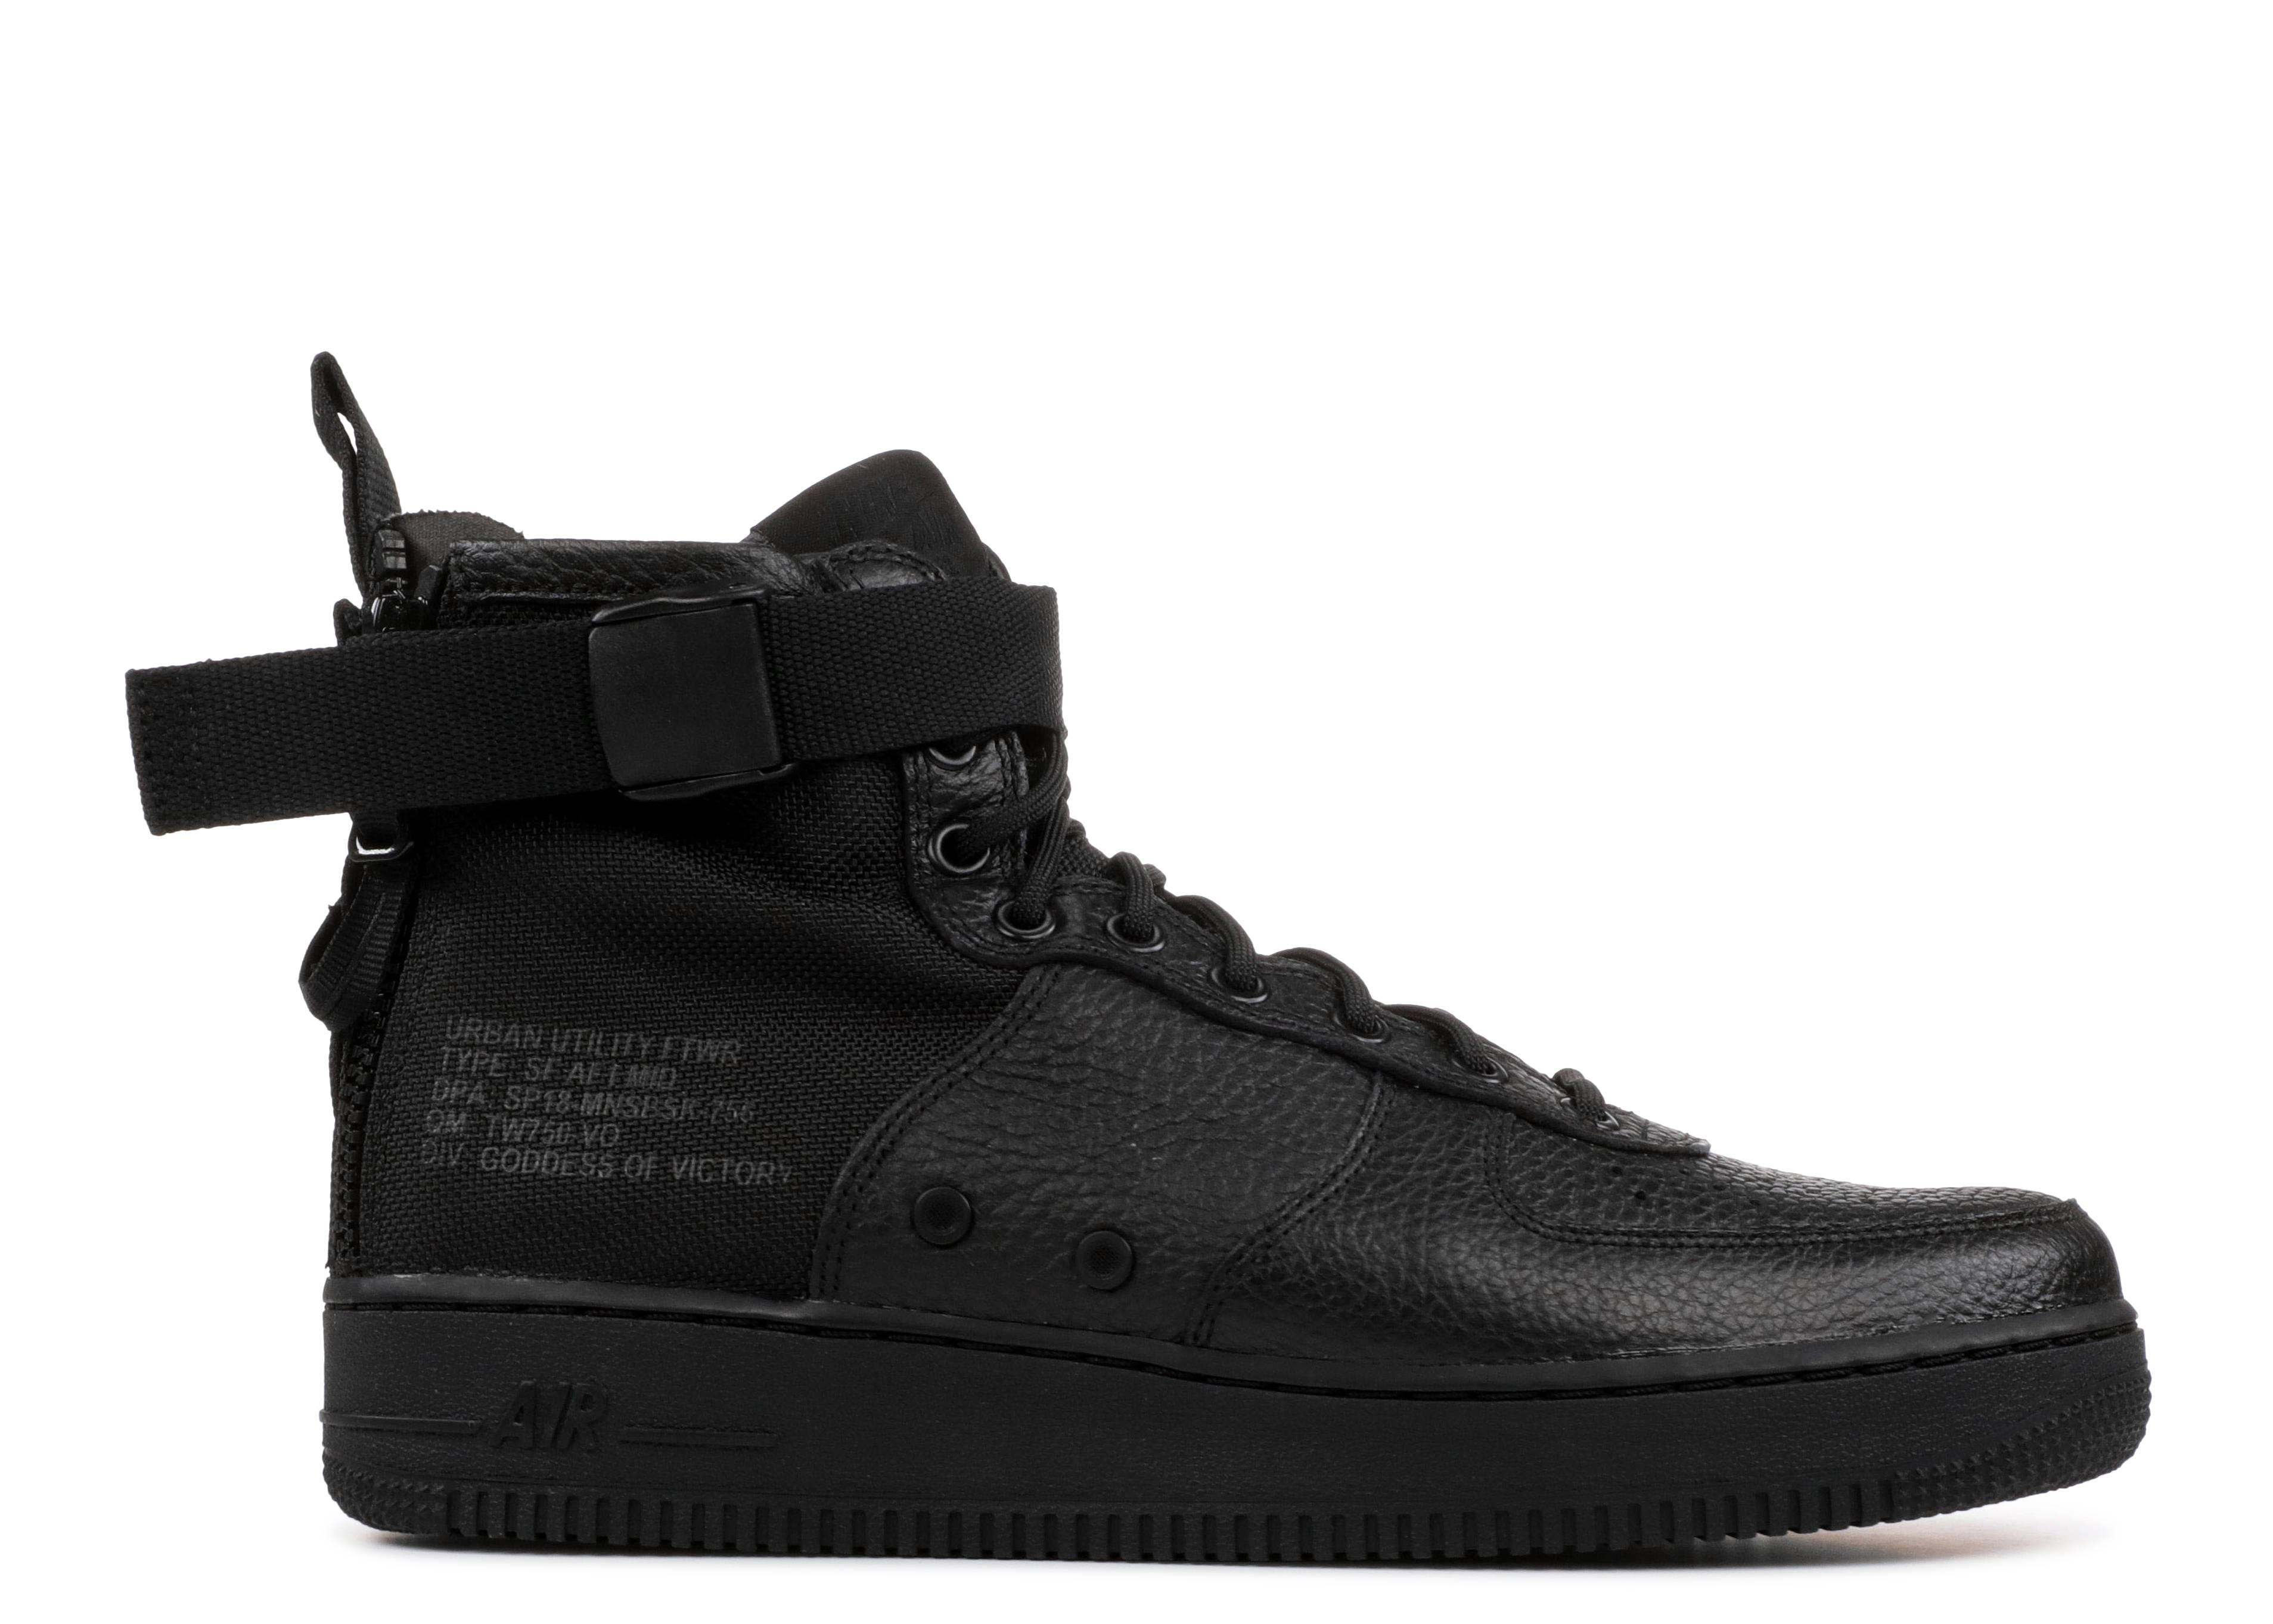 Nike Synthetic Sf Air Force 1 Mid Black